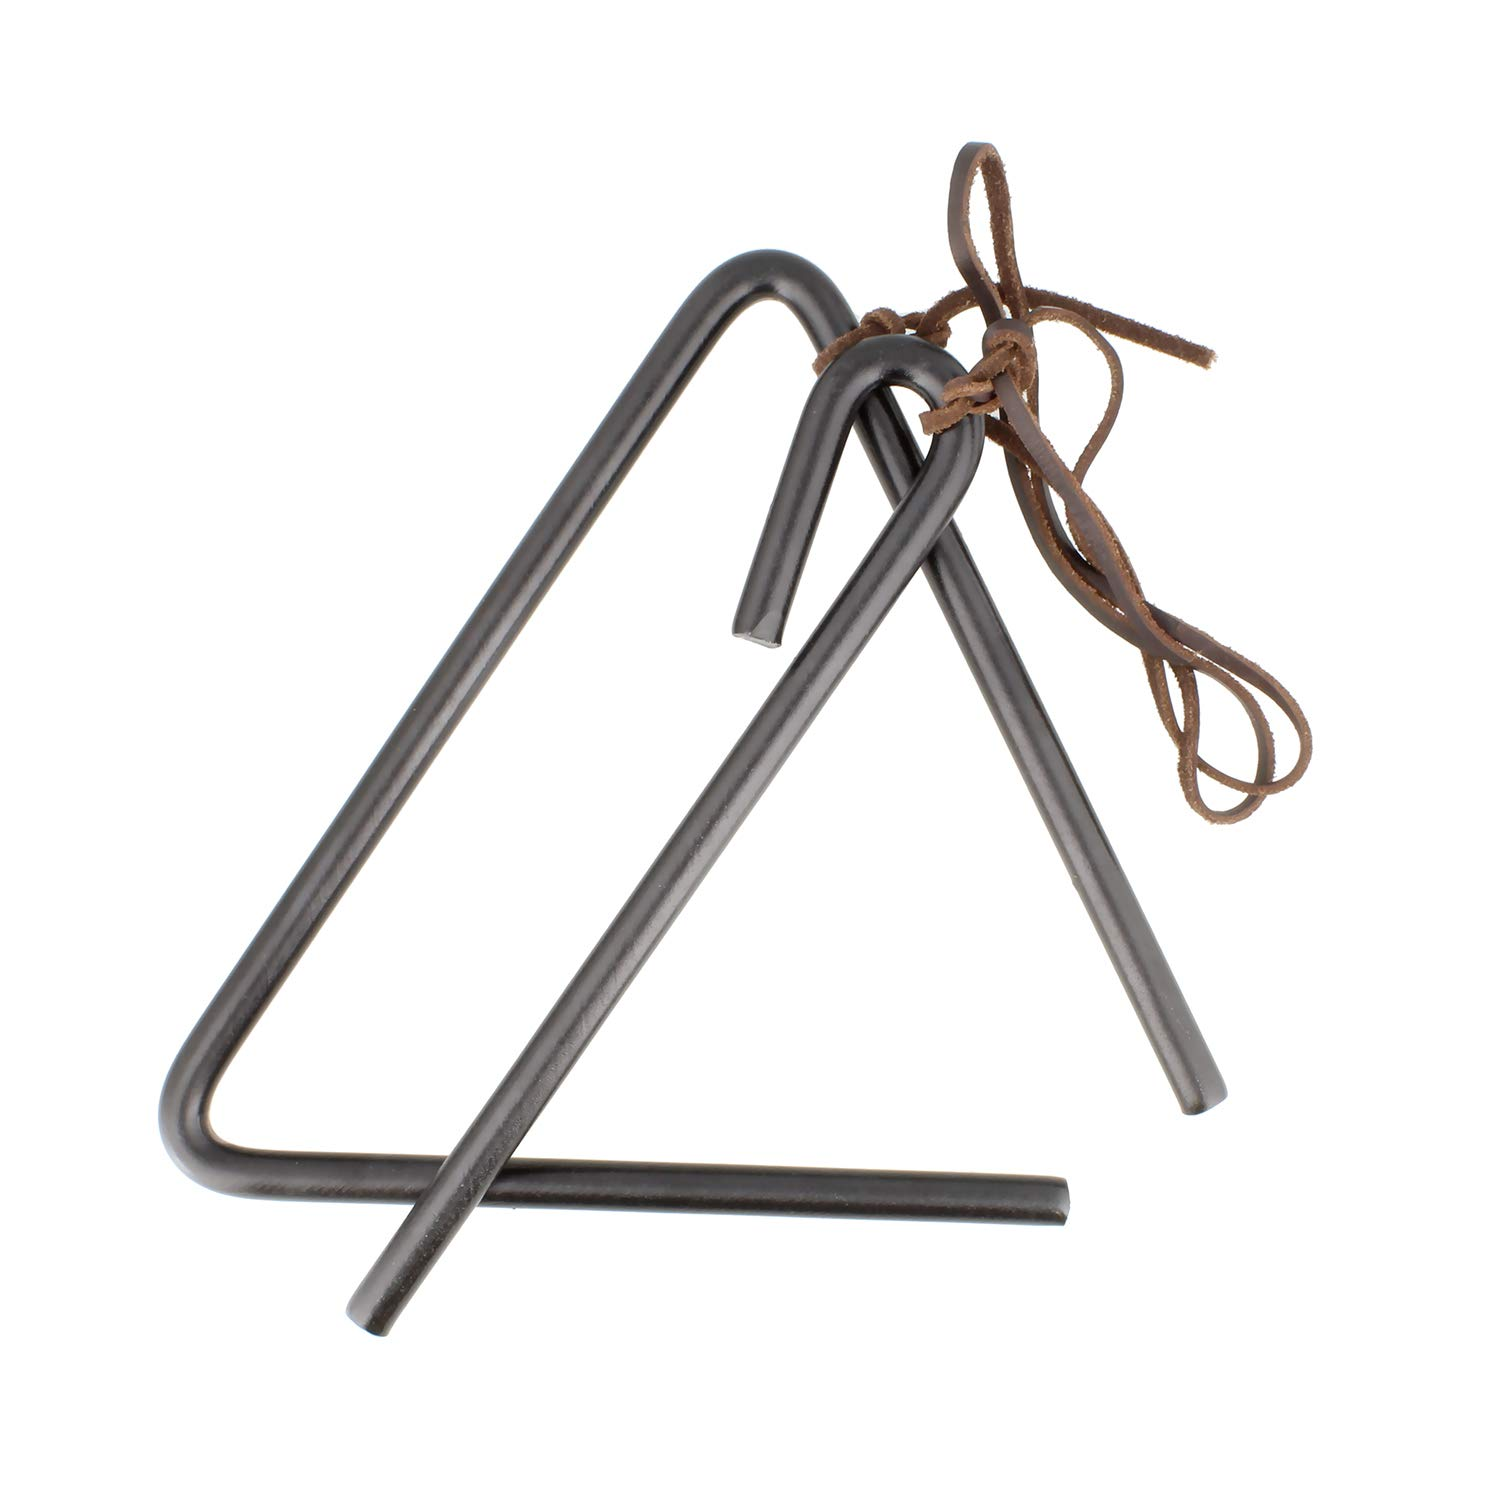 Redneck Convent Triangle Call Bell - Outdoor Bell Ringer Triangle Dinner Bell, Dinner Triangle, Farmhouse Bell - Chuckwagon Dinner Bell by Redneck Convent